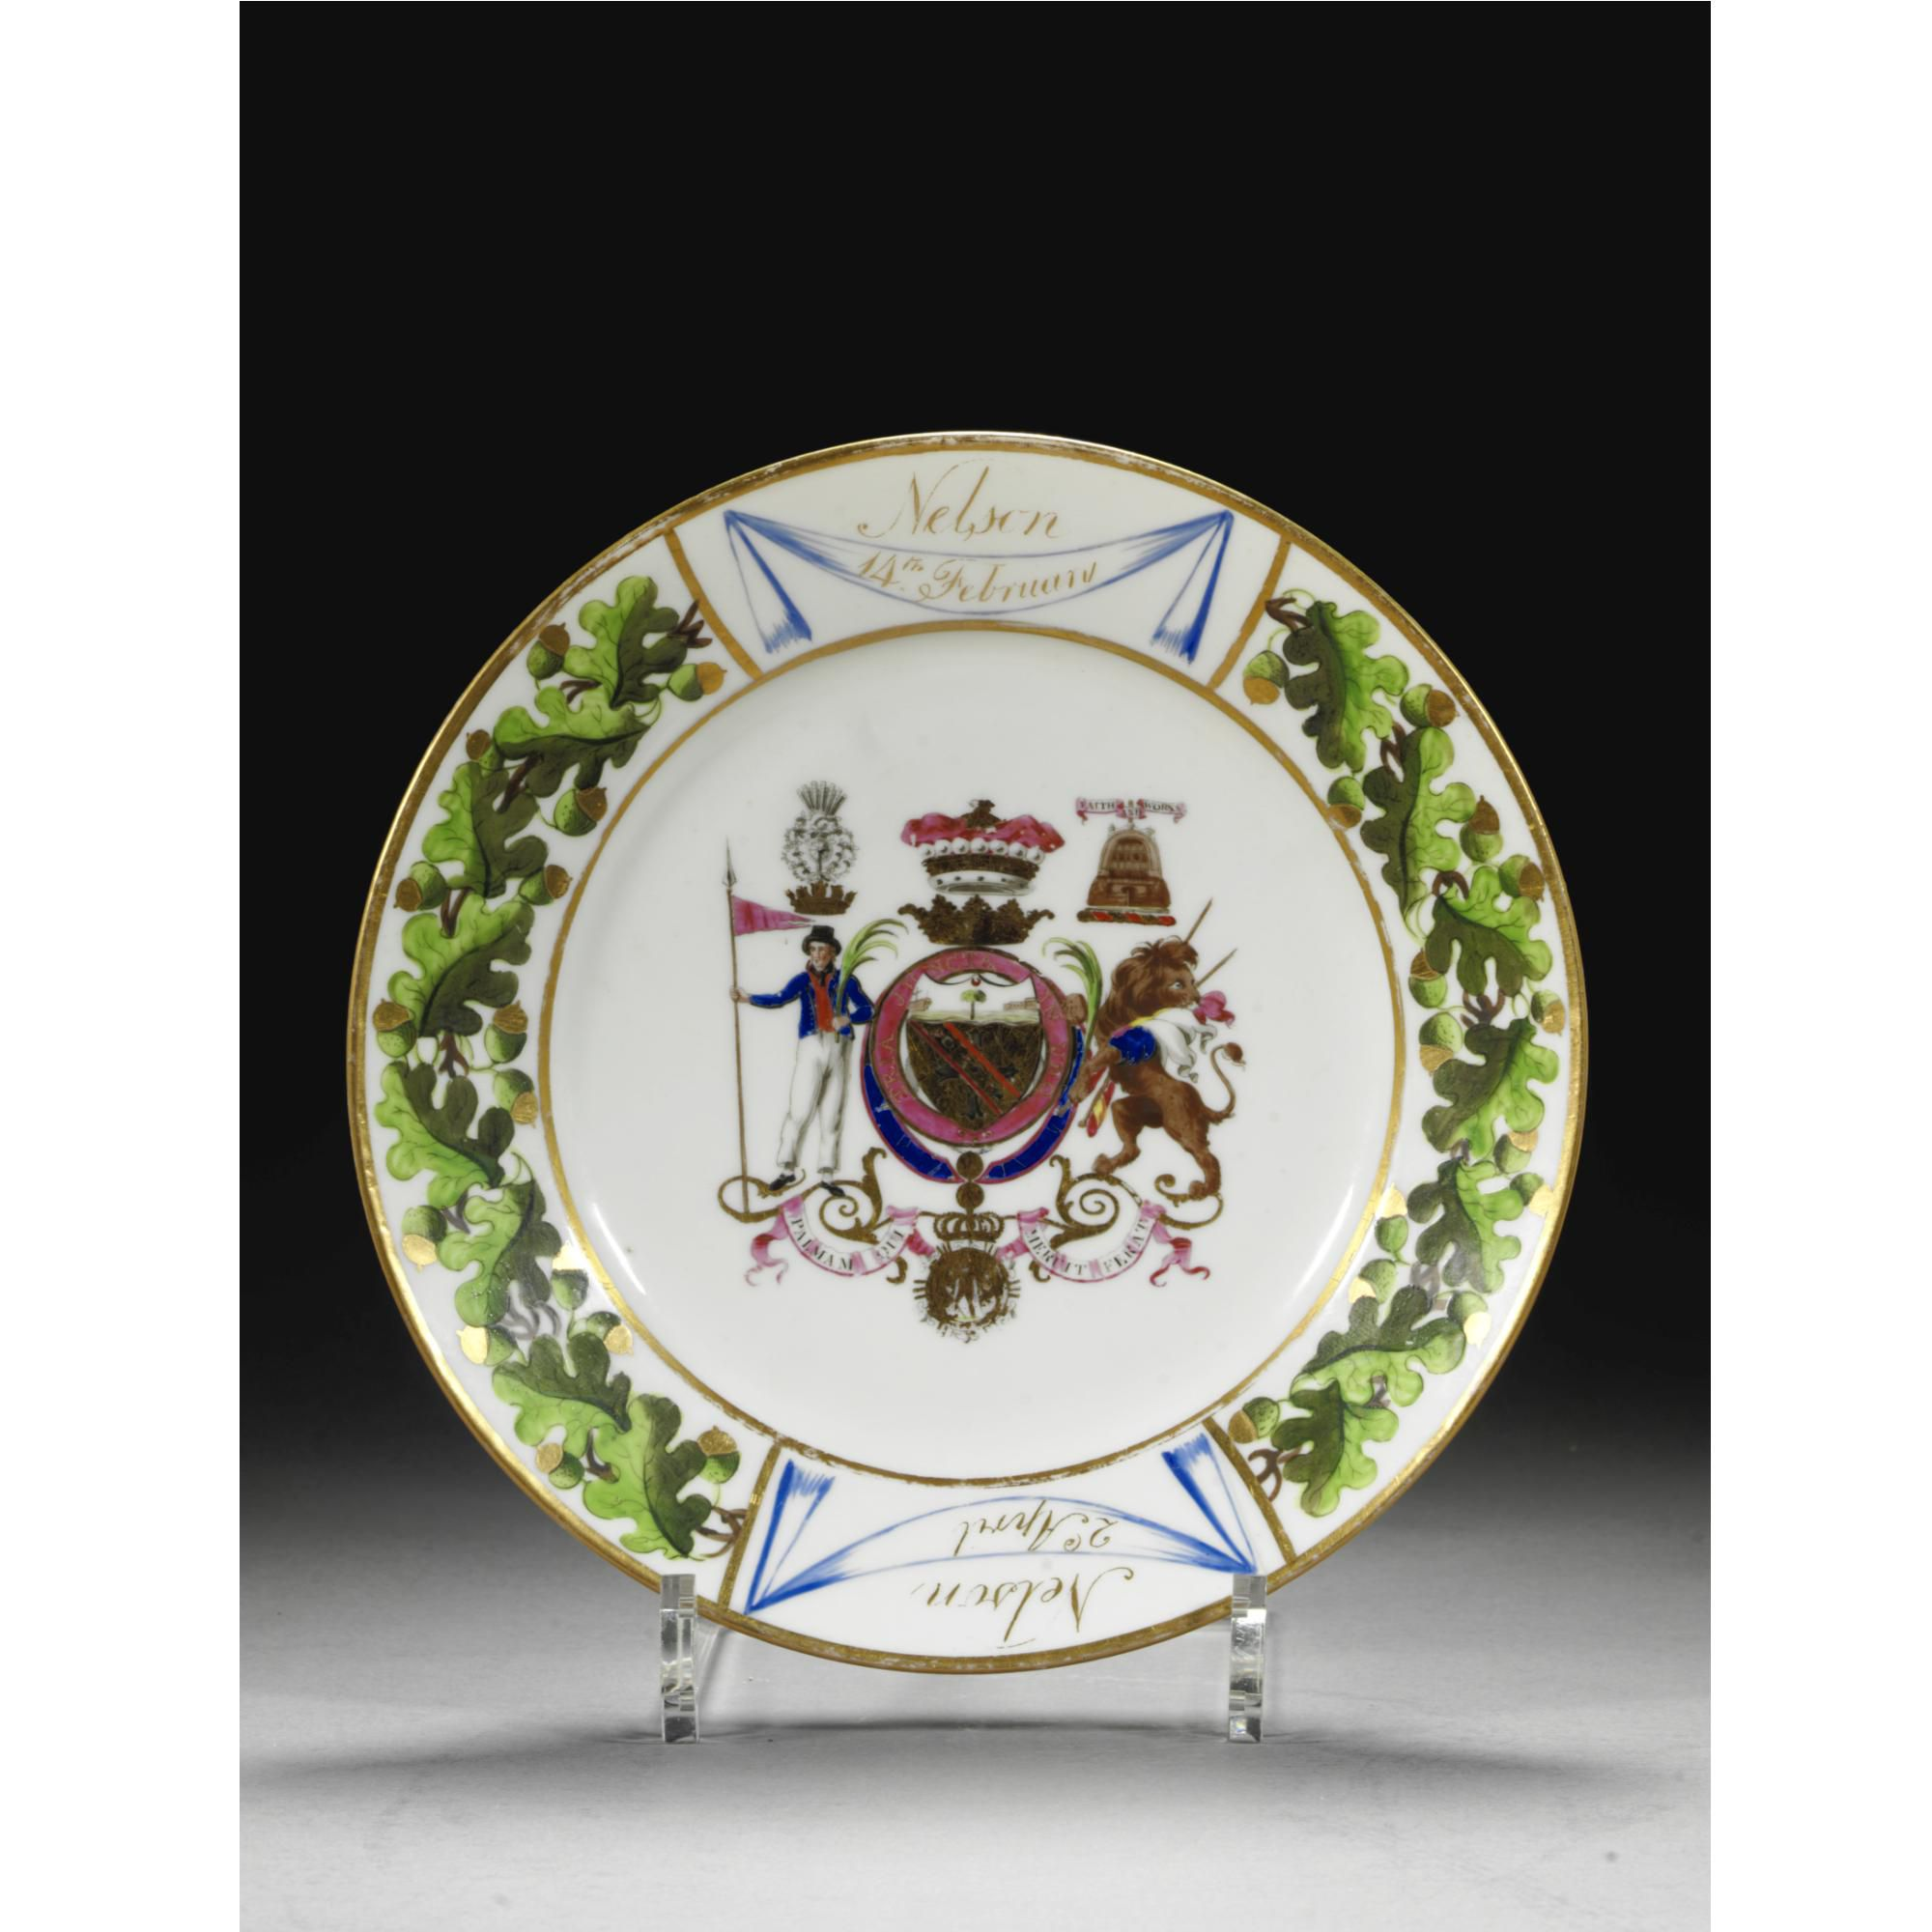 A rare Coalport porcelain plate from the Nelson service